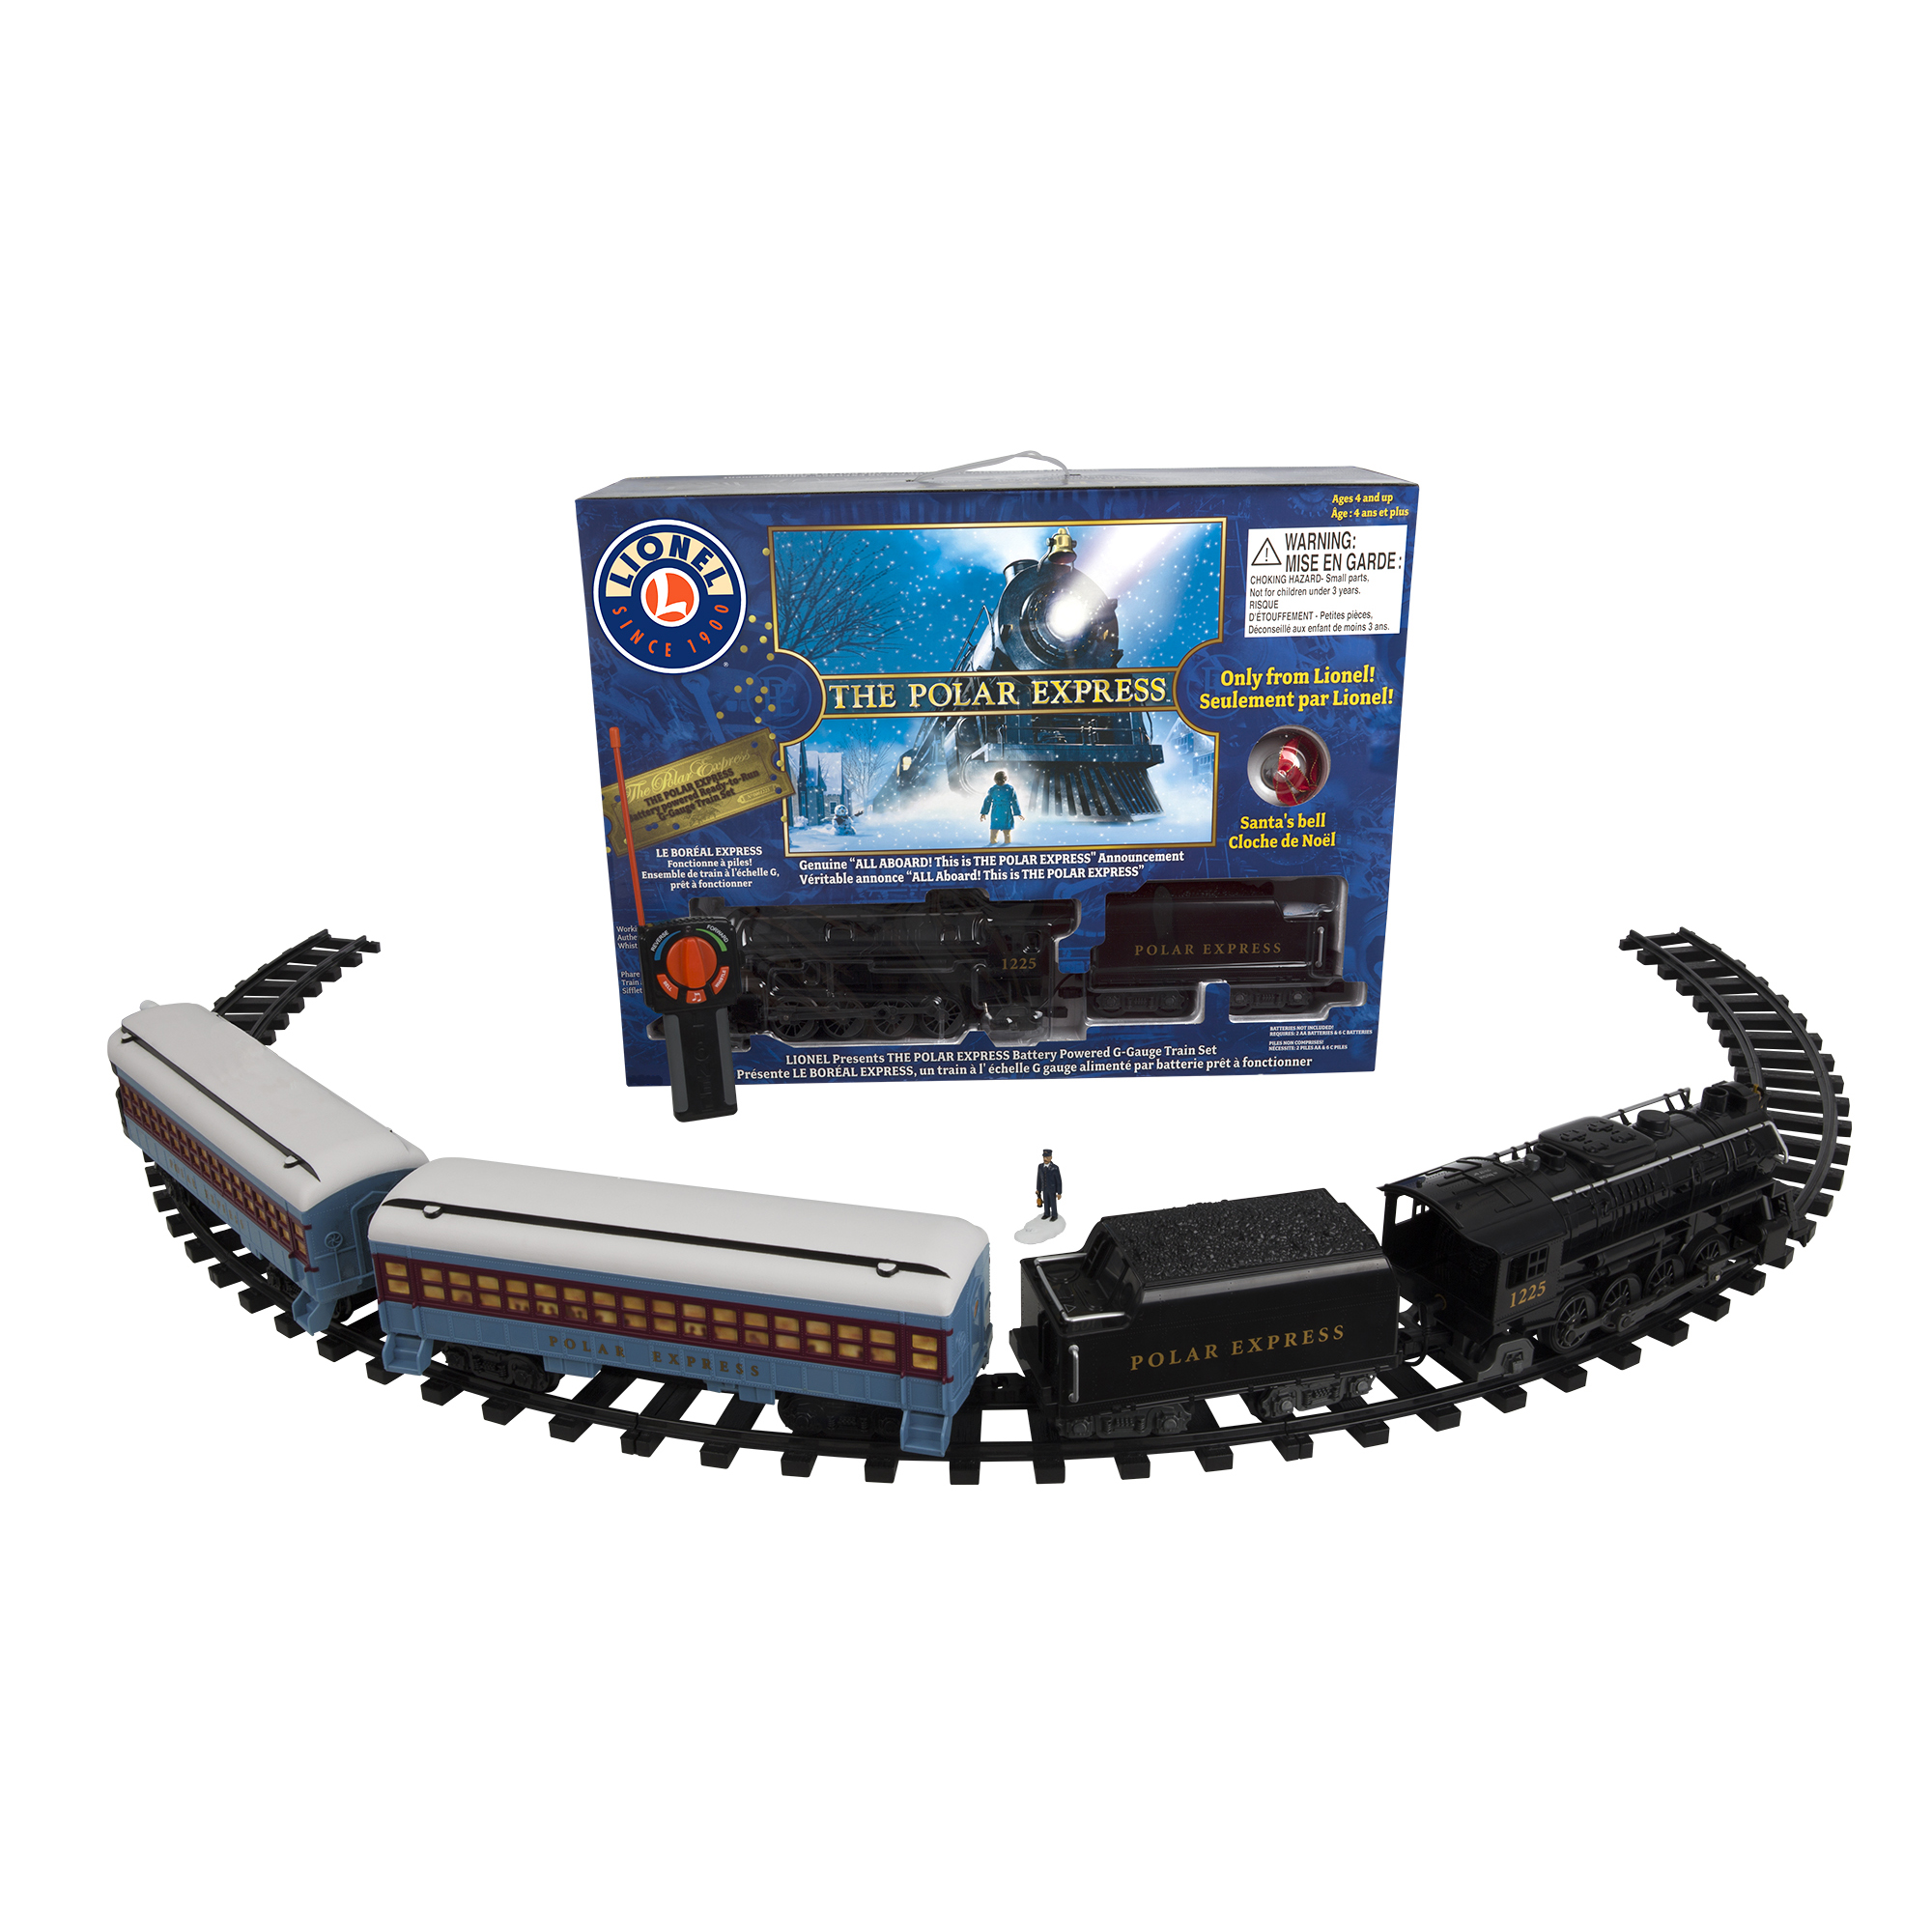 Lionel Trains The Polar Express Seasonal Ready to Play Set by Lionel, LLC